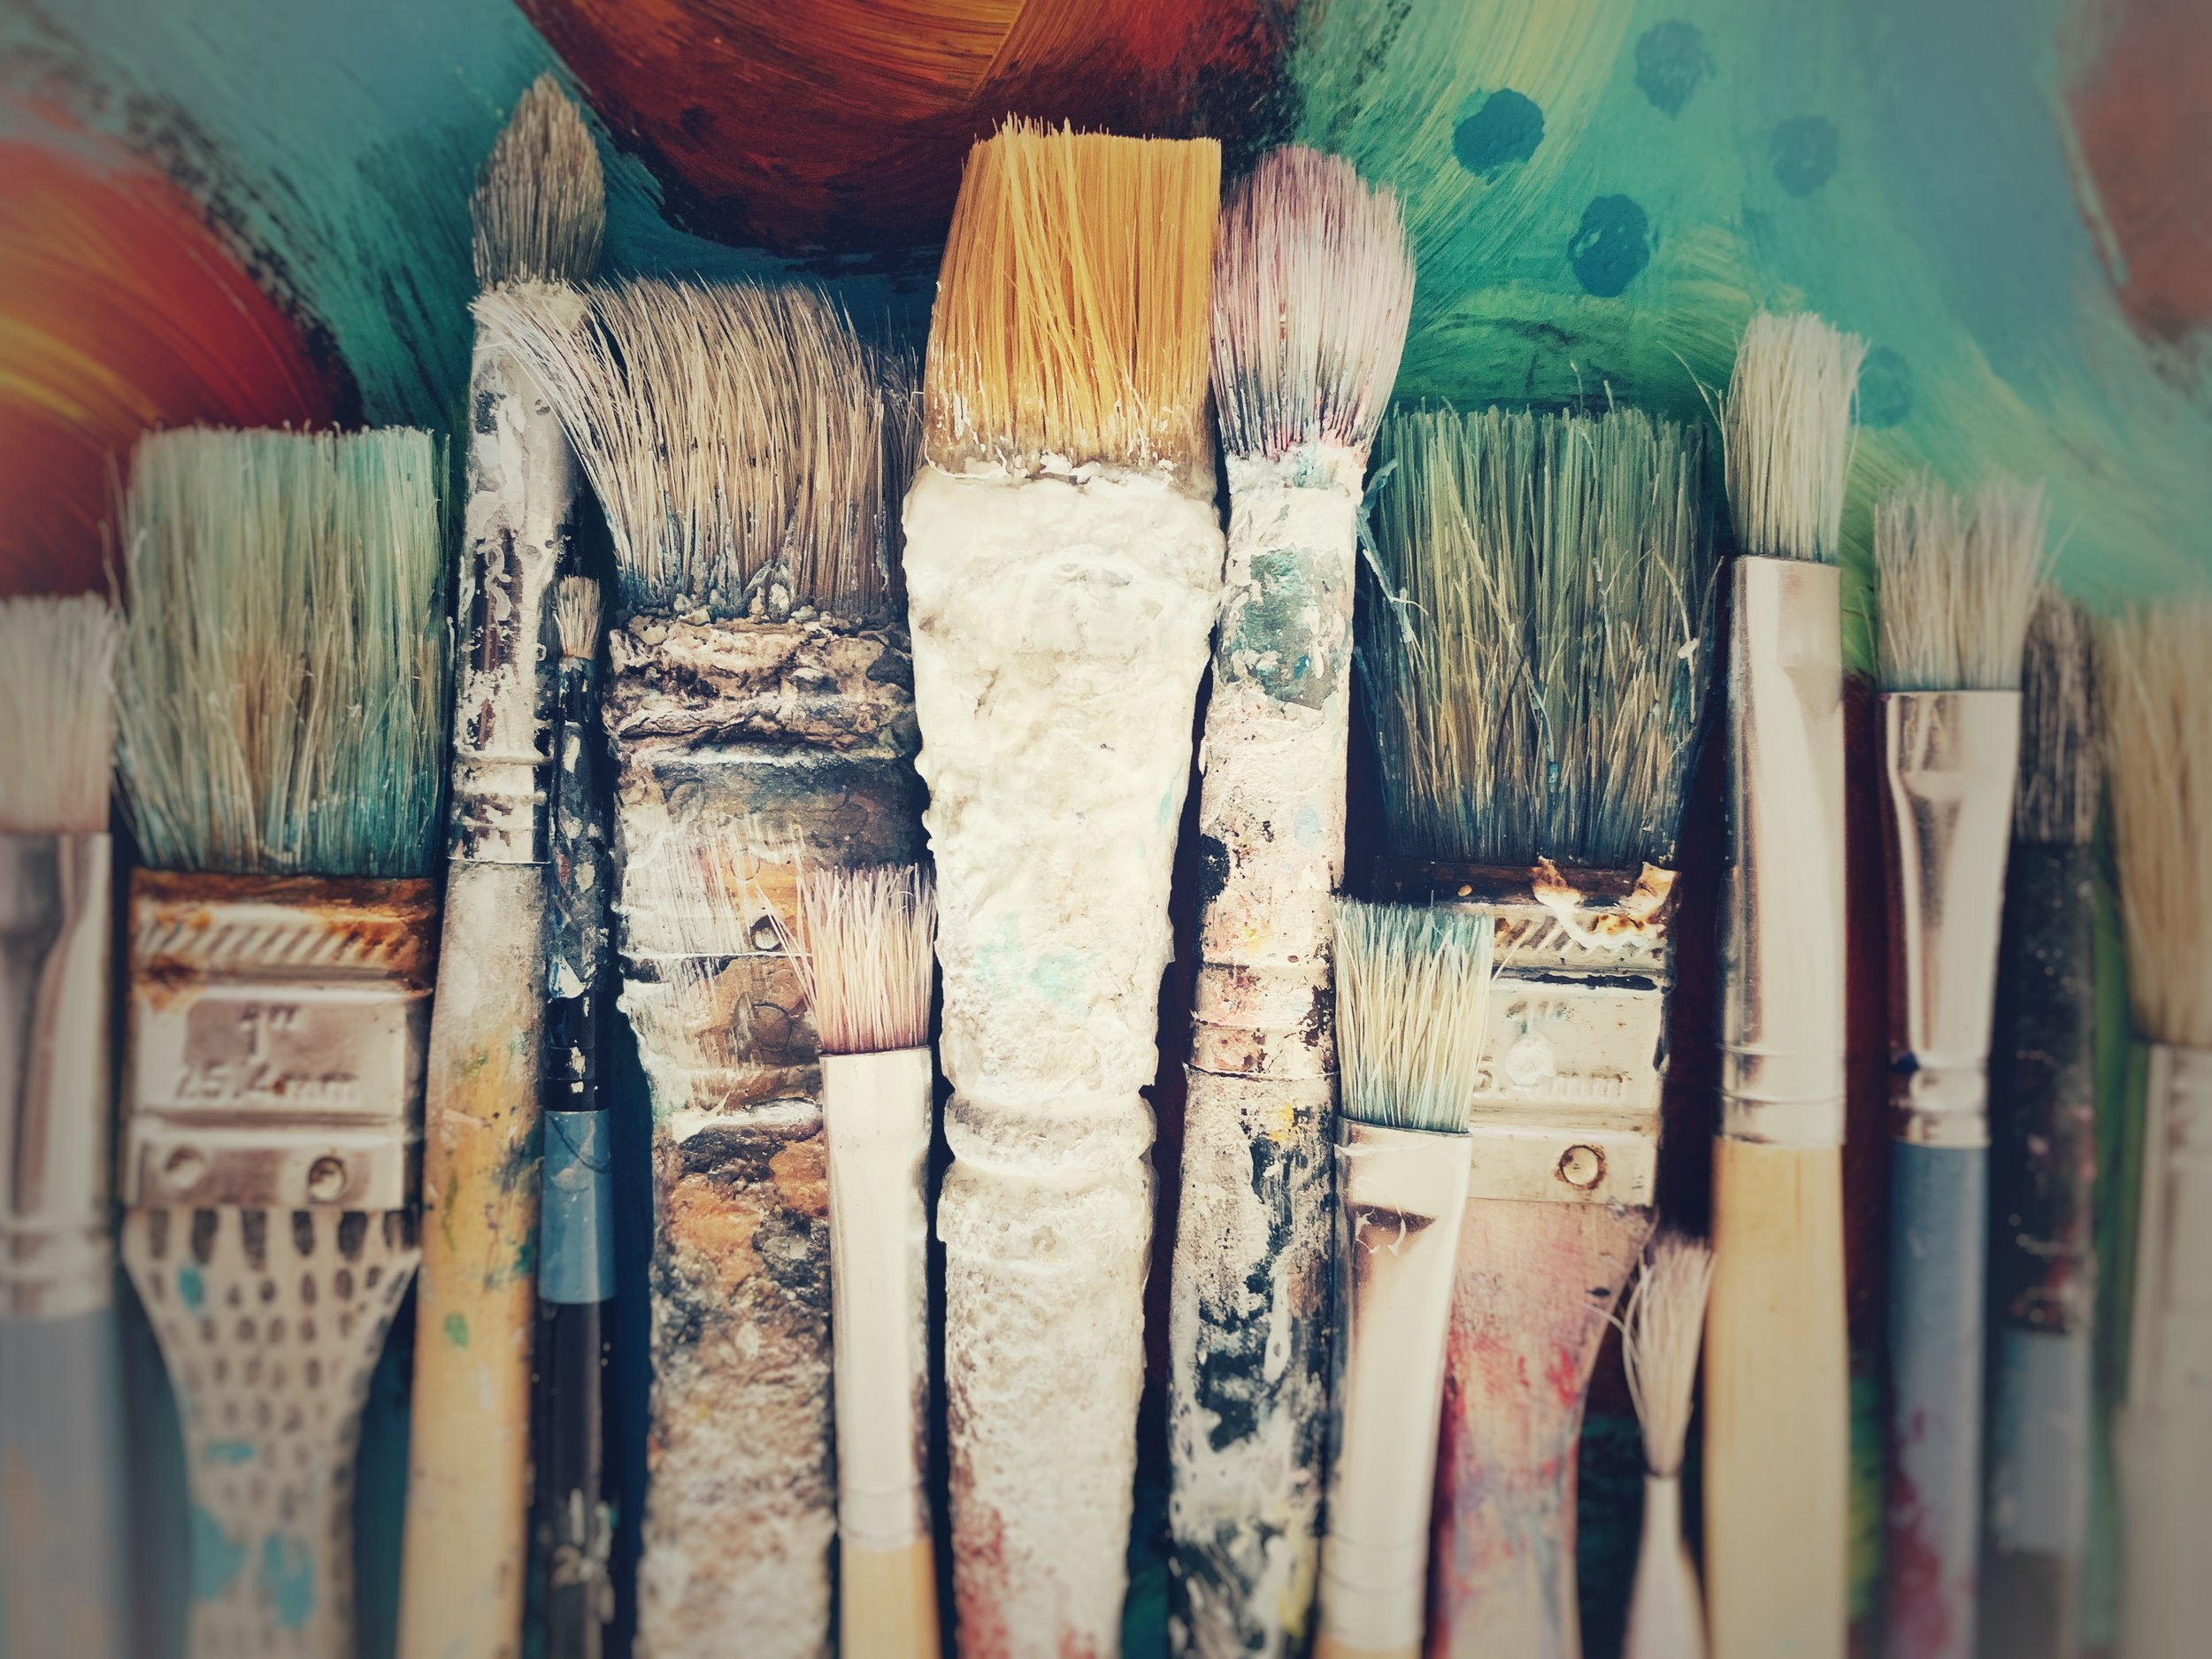 Cluster of Paint Brushes blurred lg file.jpeg